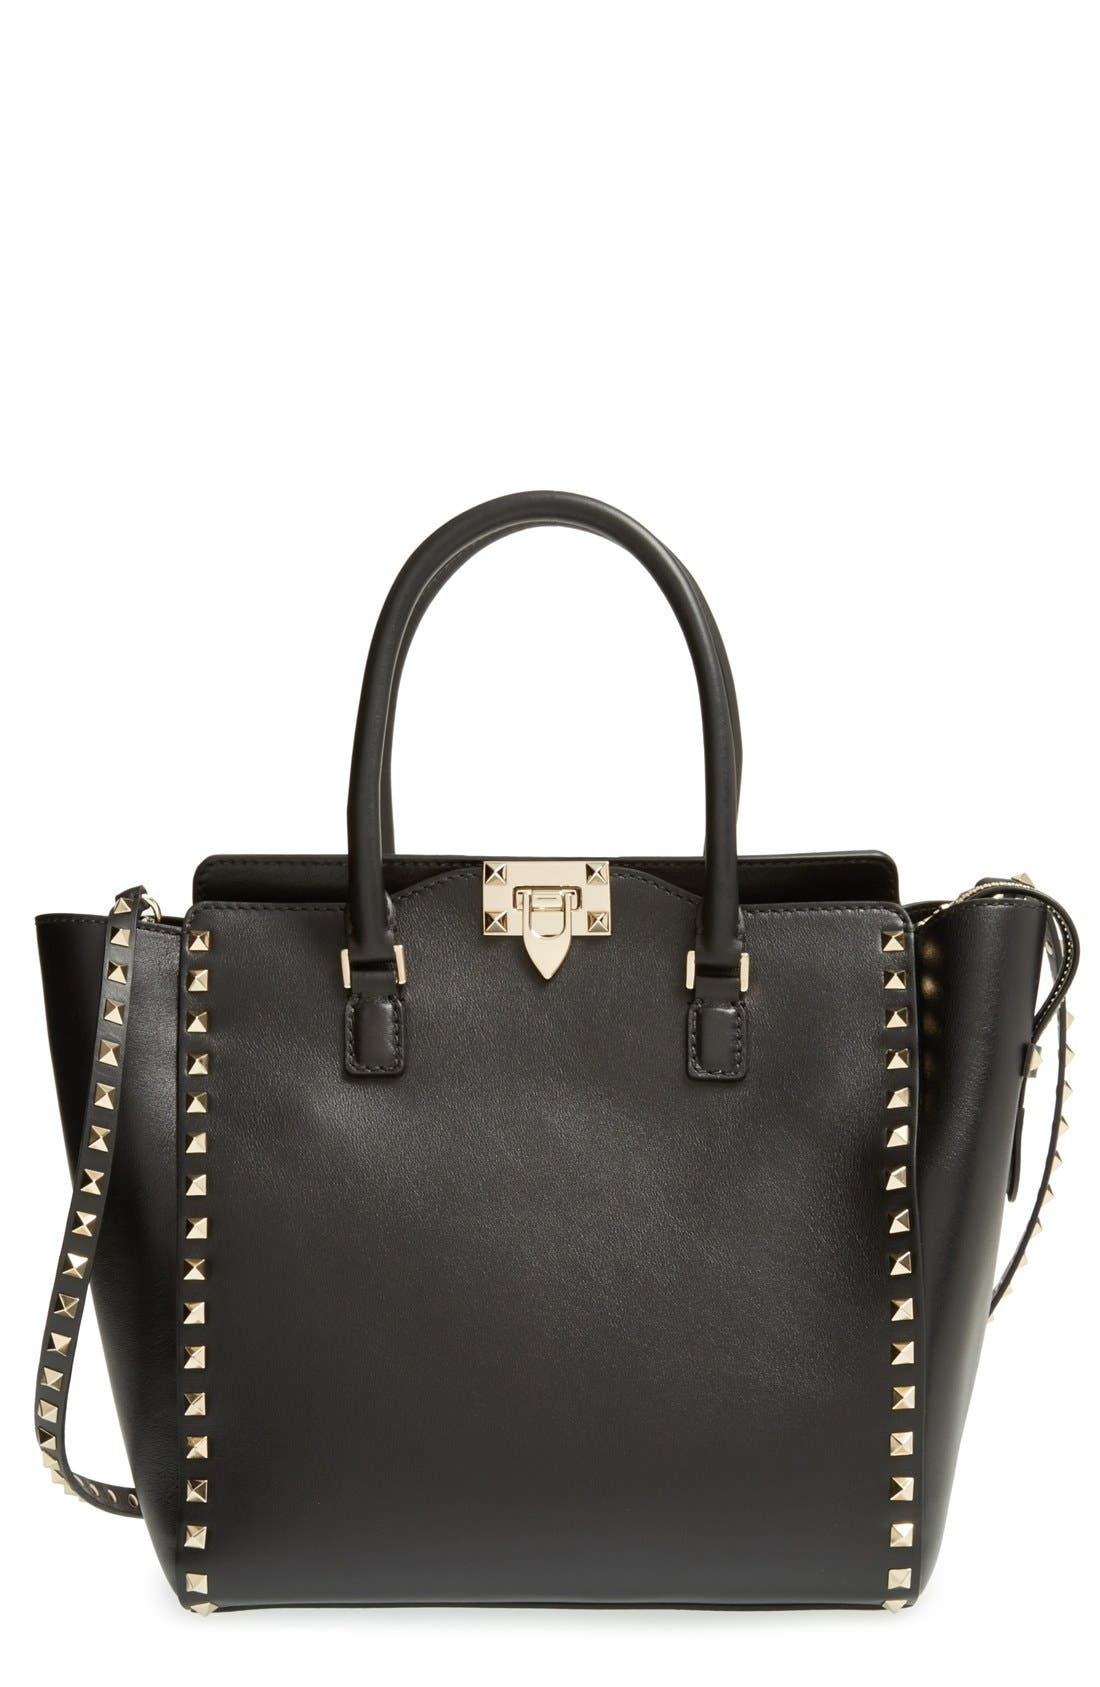 Alternate Image 1 Selected - Valentino 'Rockstud' Leather Double Handle Tote